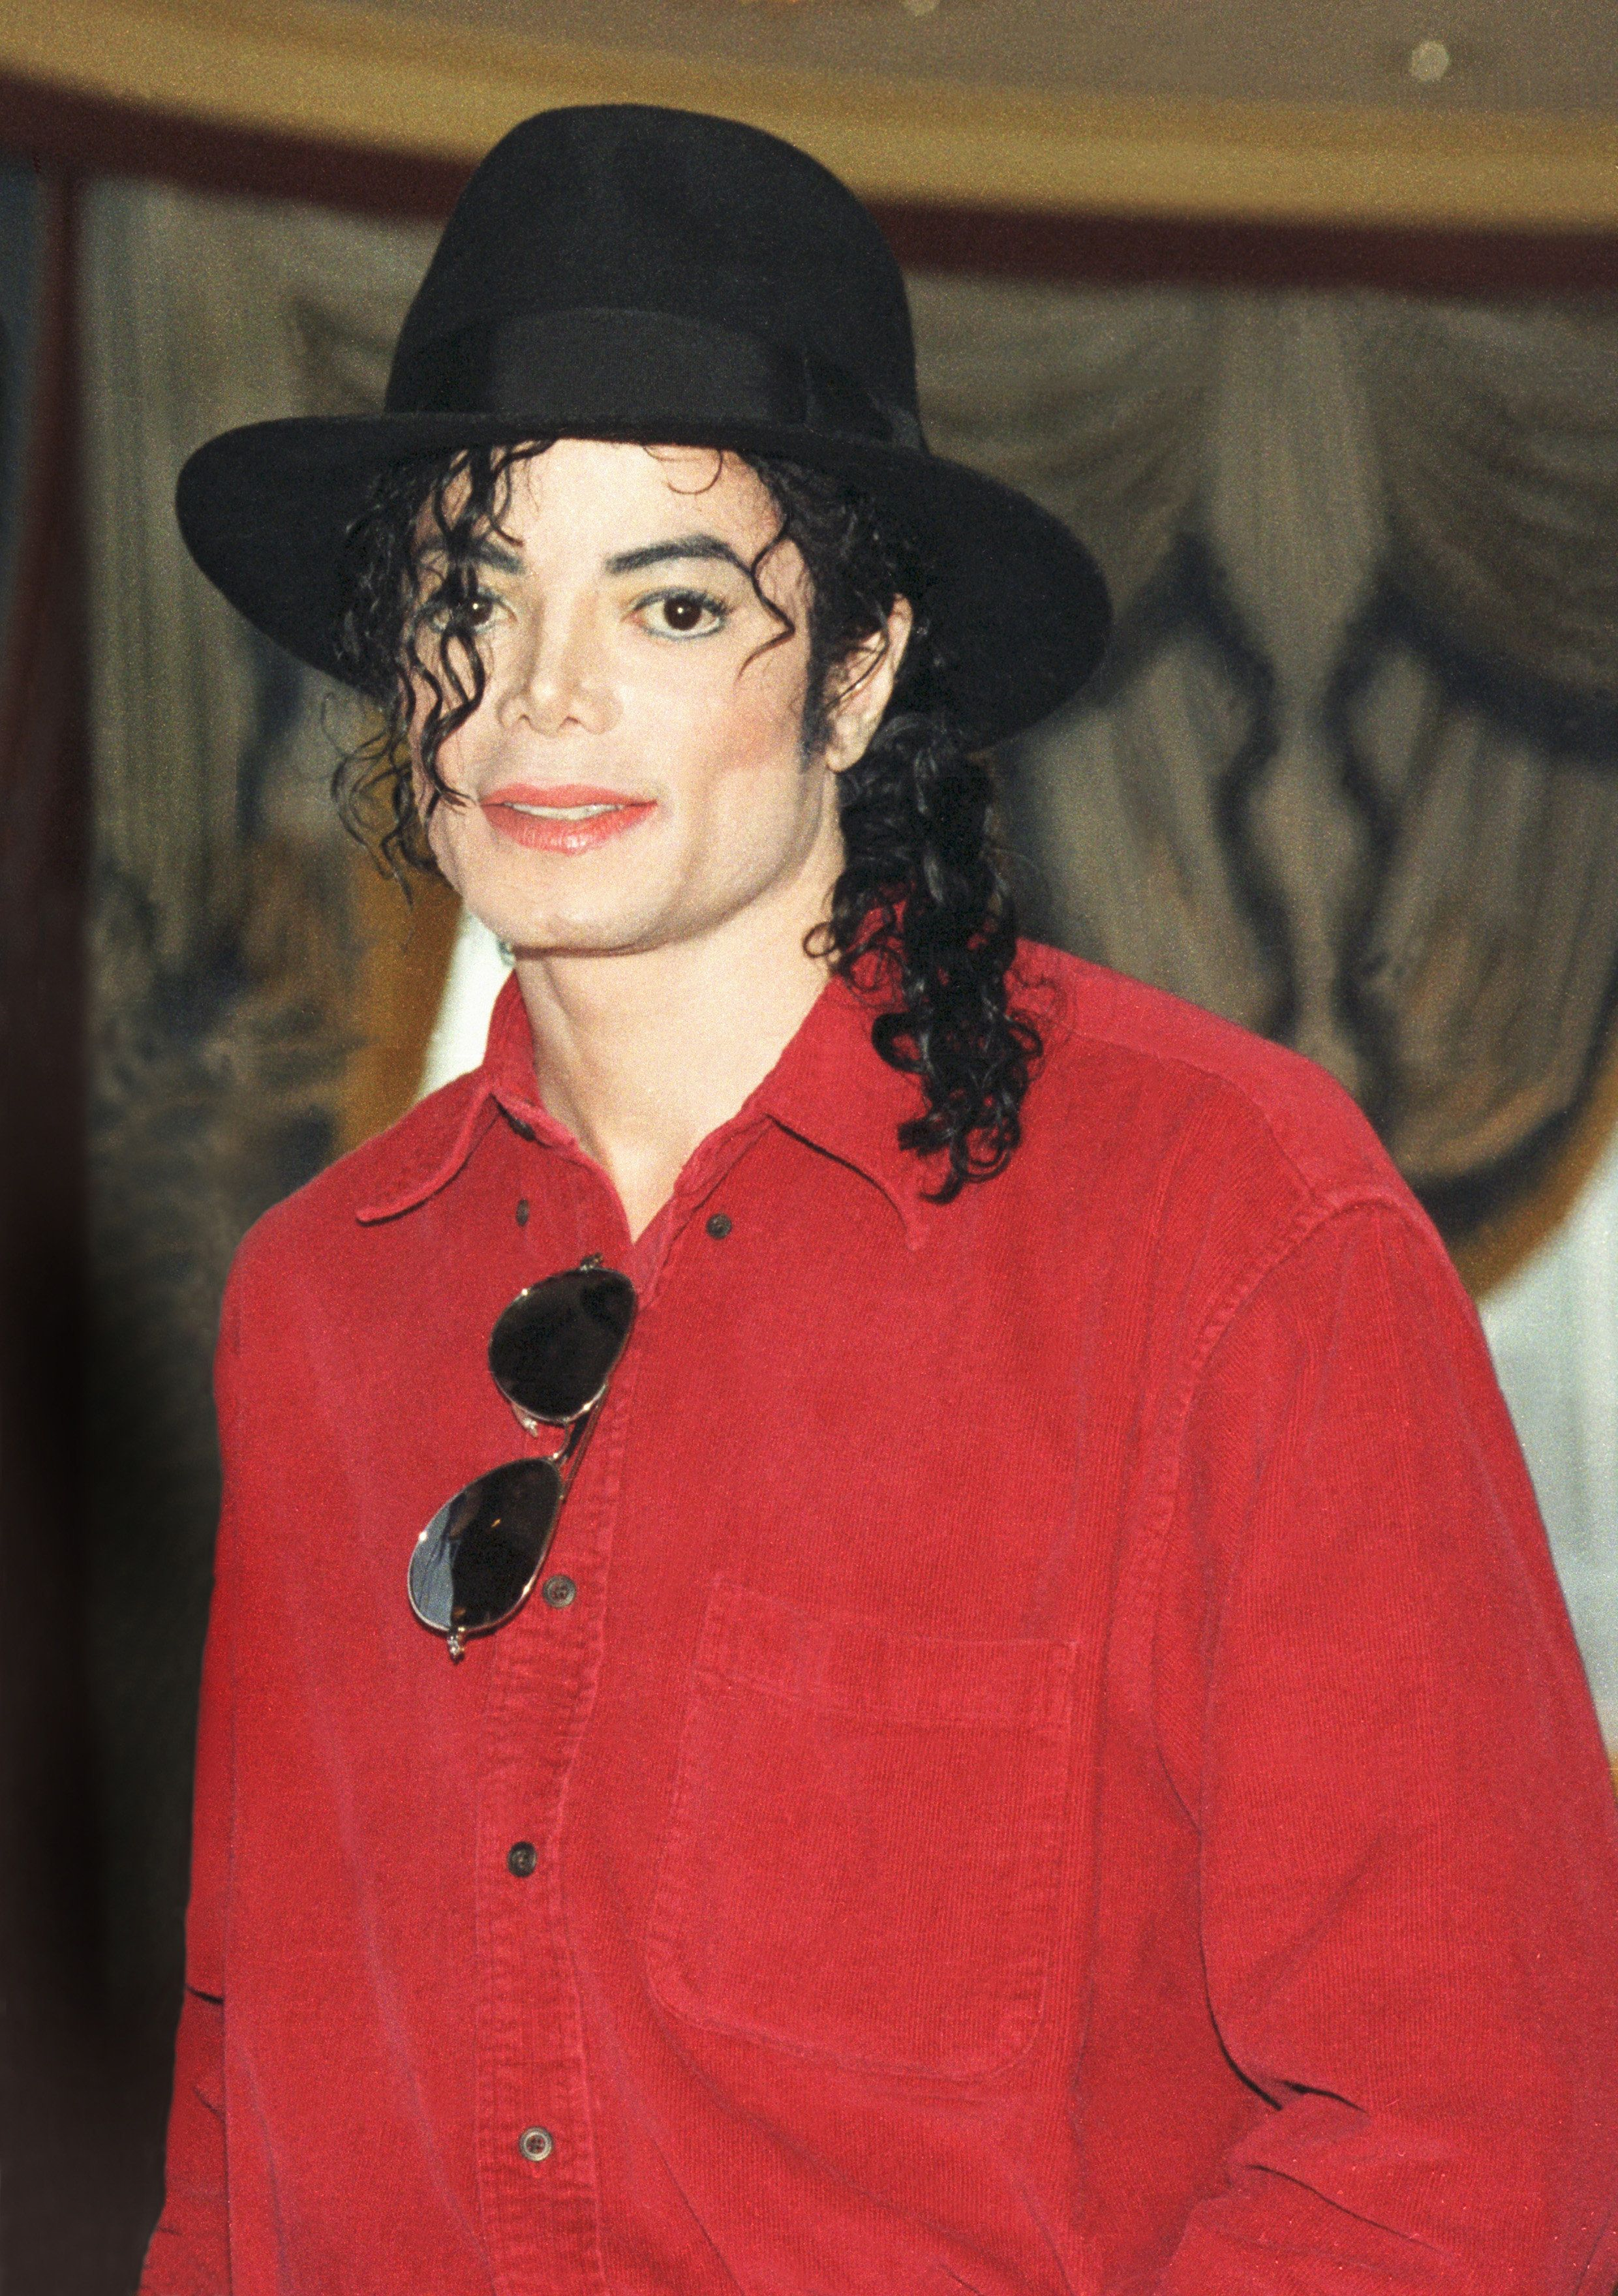 Michael Jackson in 1996.